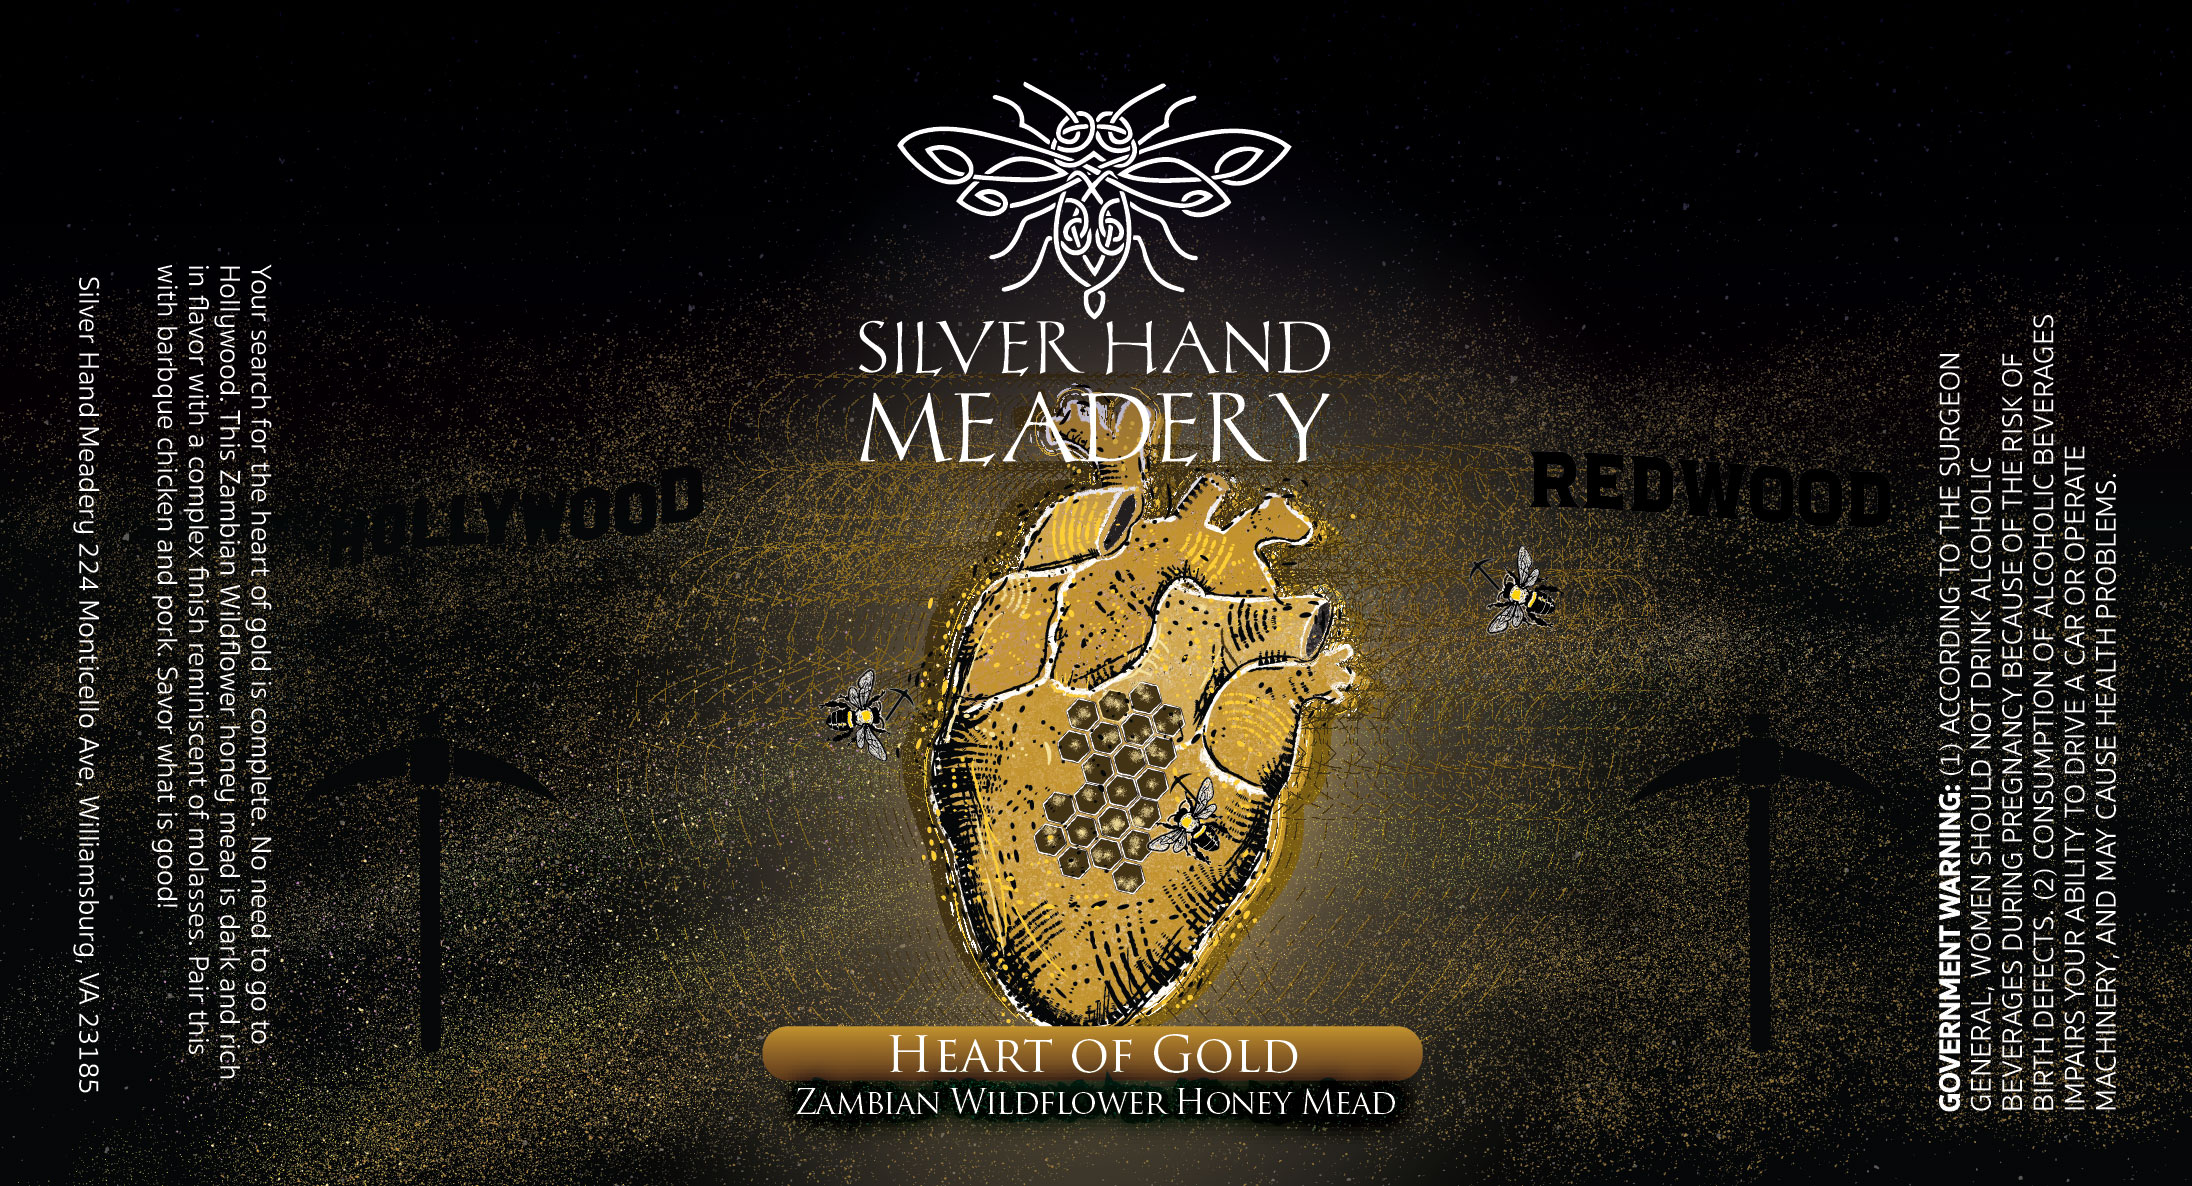 Silver Hand Meadery - Heart of Gold